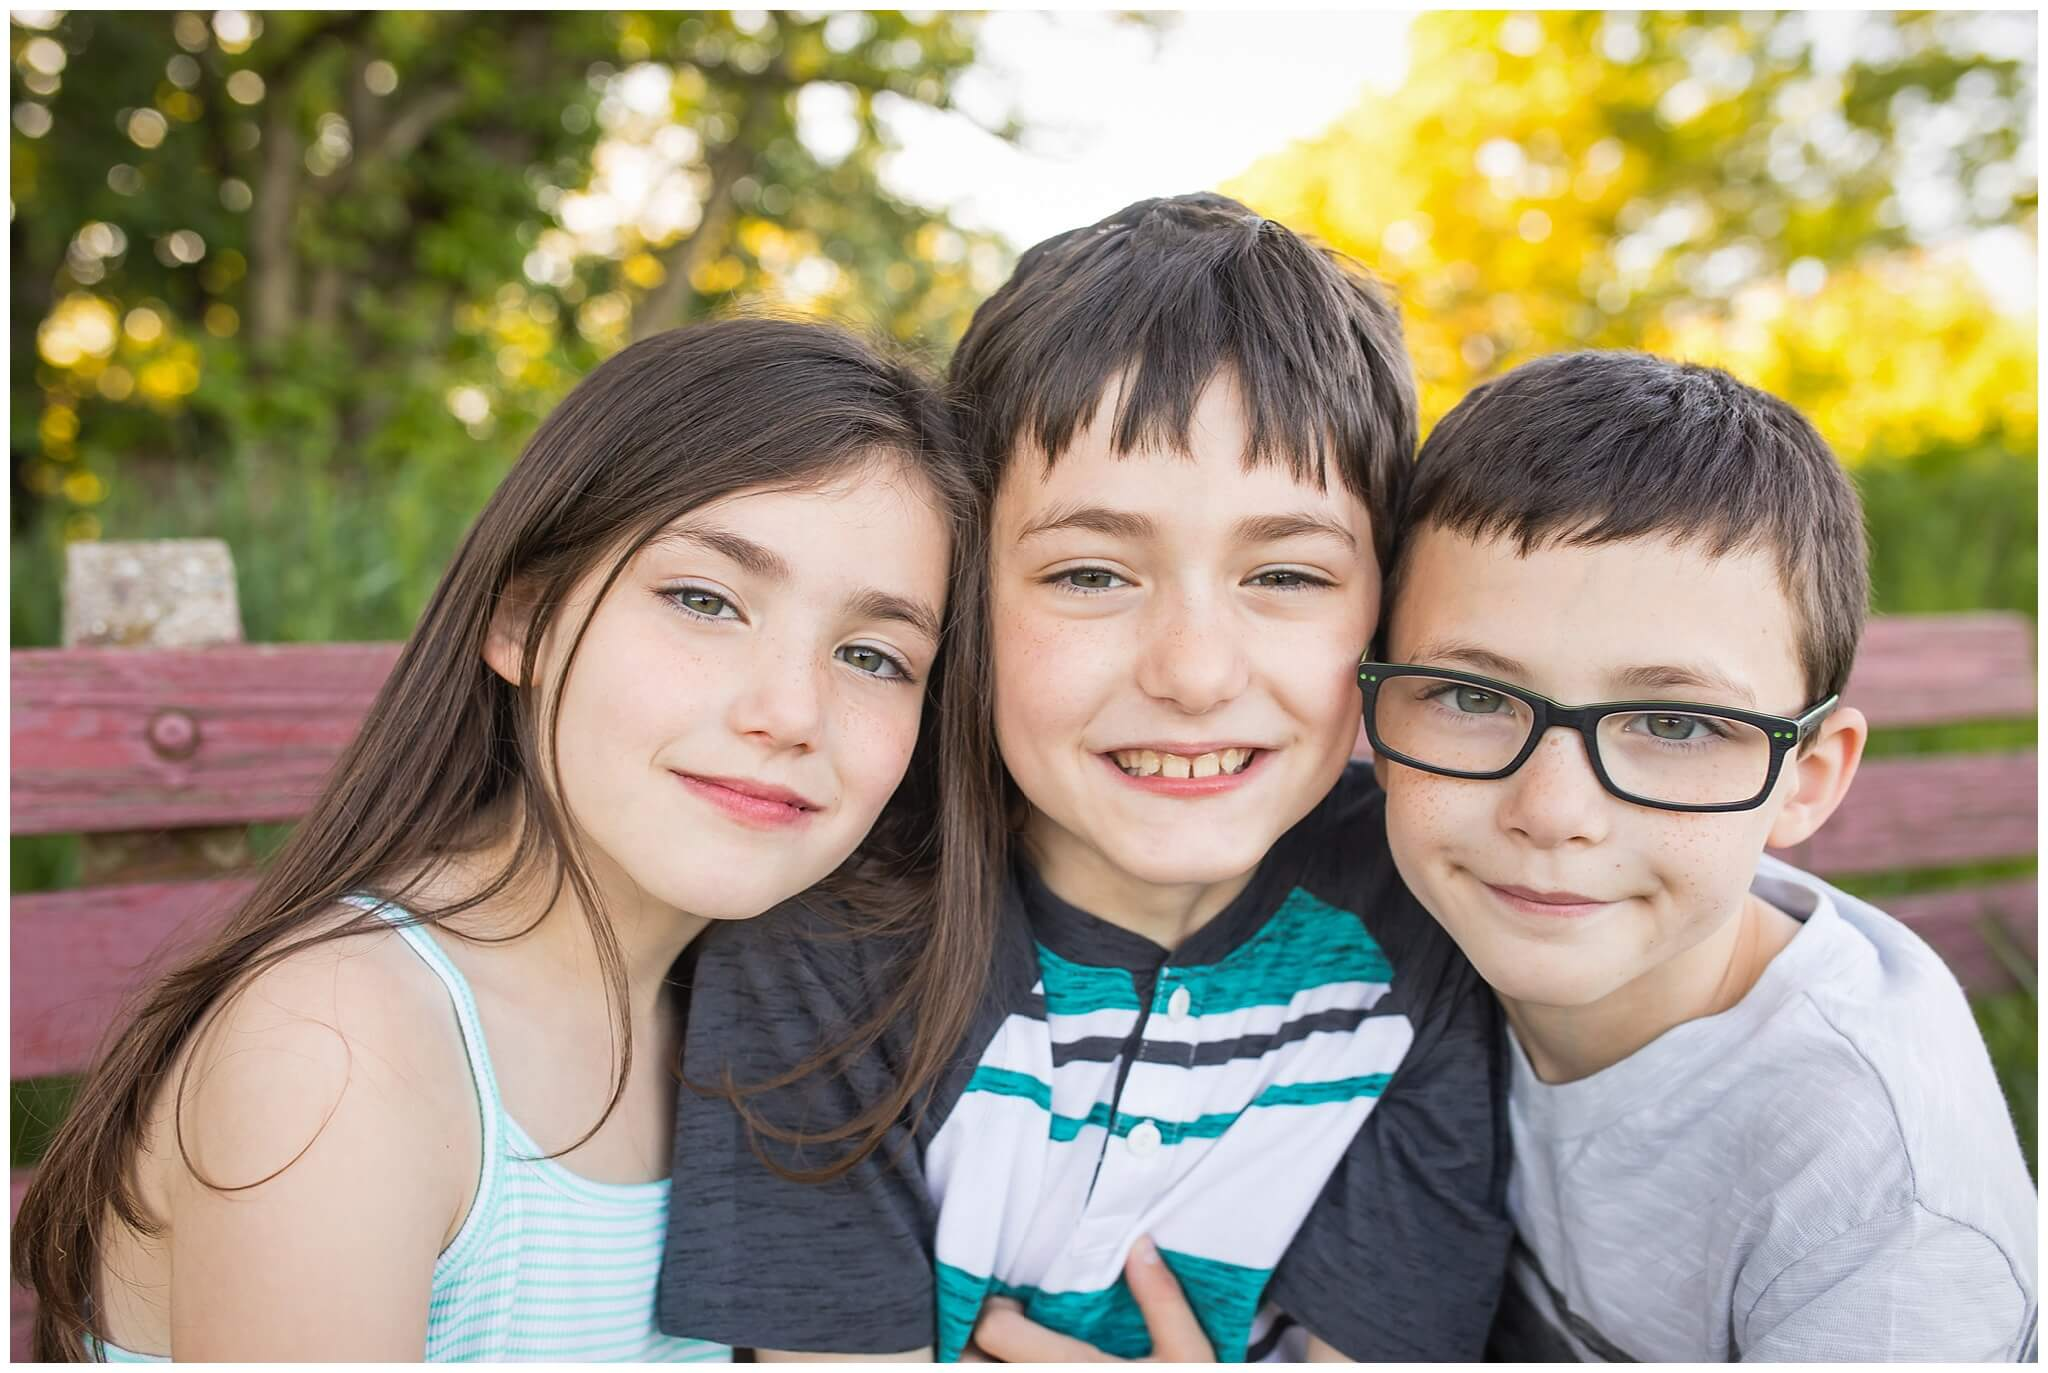 Pittsburgh Family Photographer | Outdoor Family Portraits | Ferriolo Family